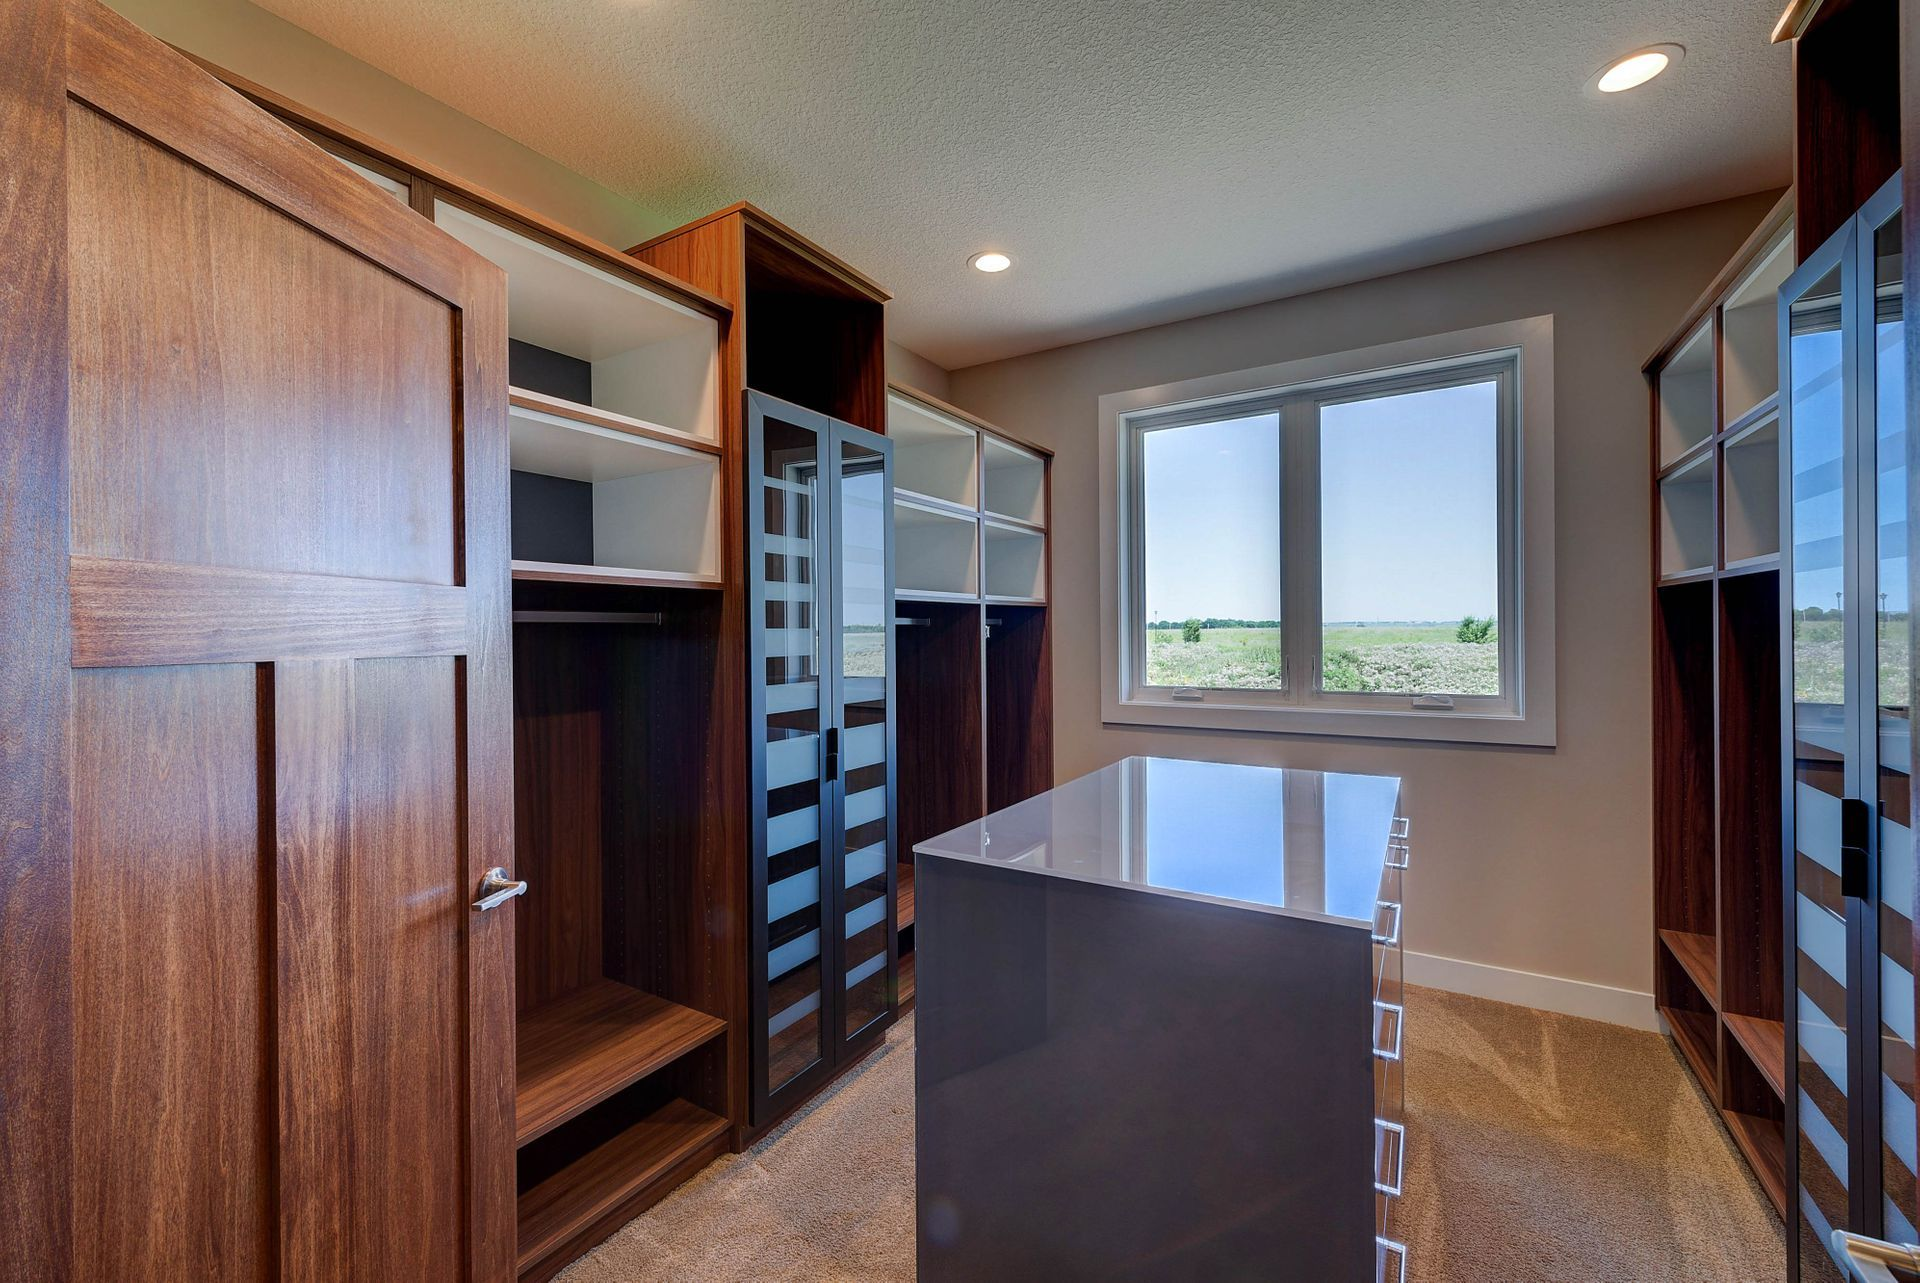 Lux Custom Closet In This Amazing Custom Home Built By Fieldstone Family Homes In Shakopee Mn Home Building A House Custom Homes